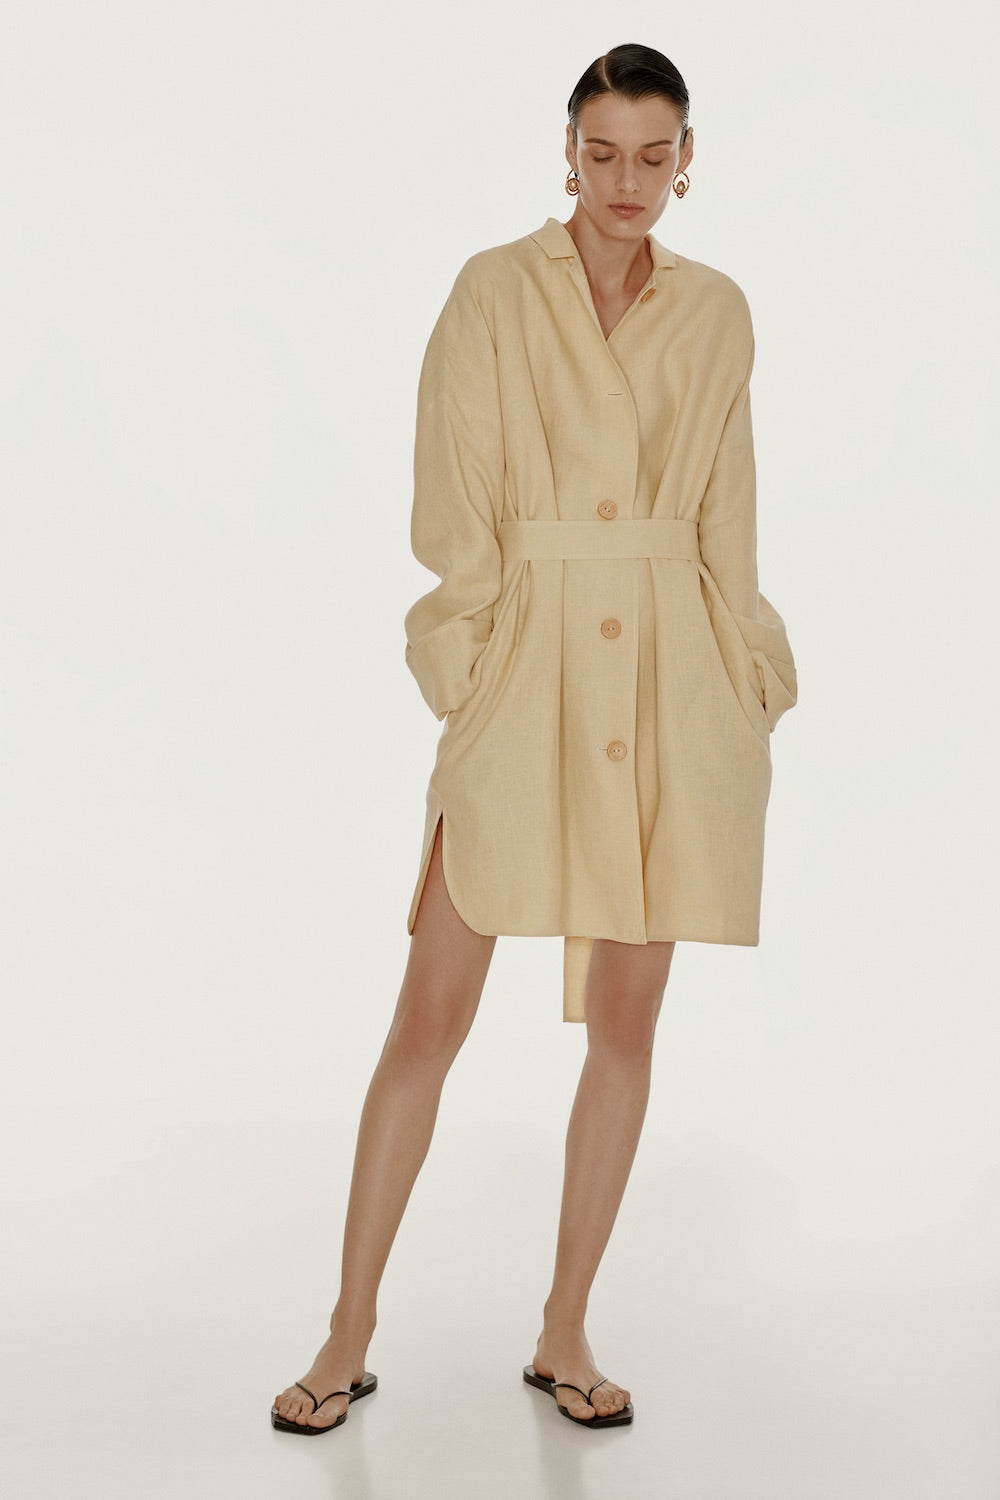 Yellow oversized linen shirt dress